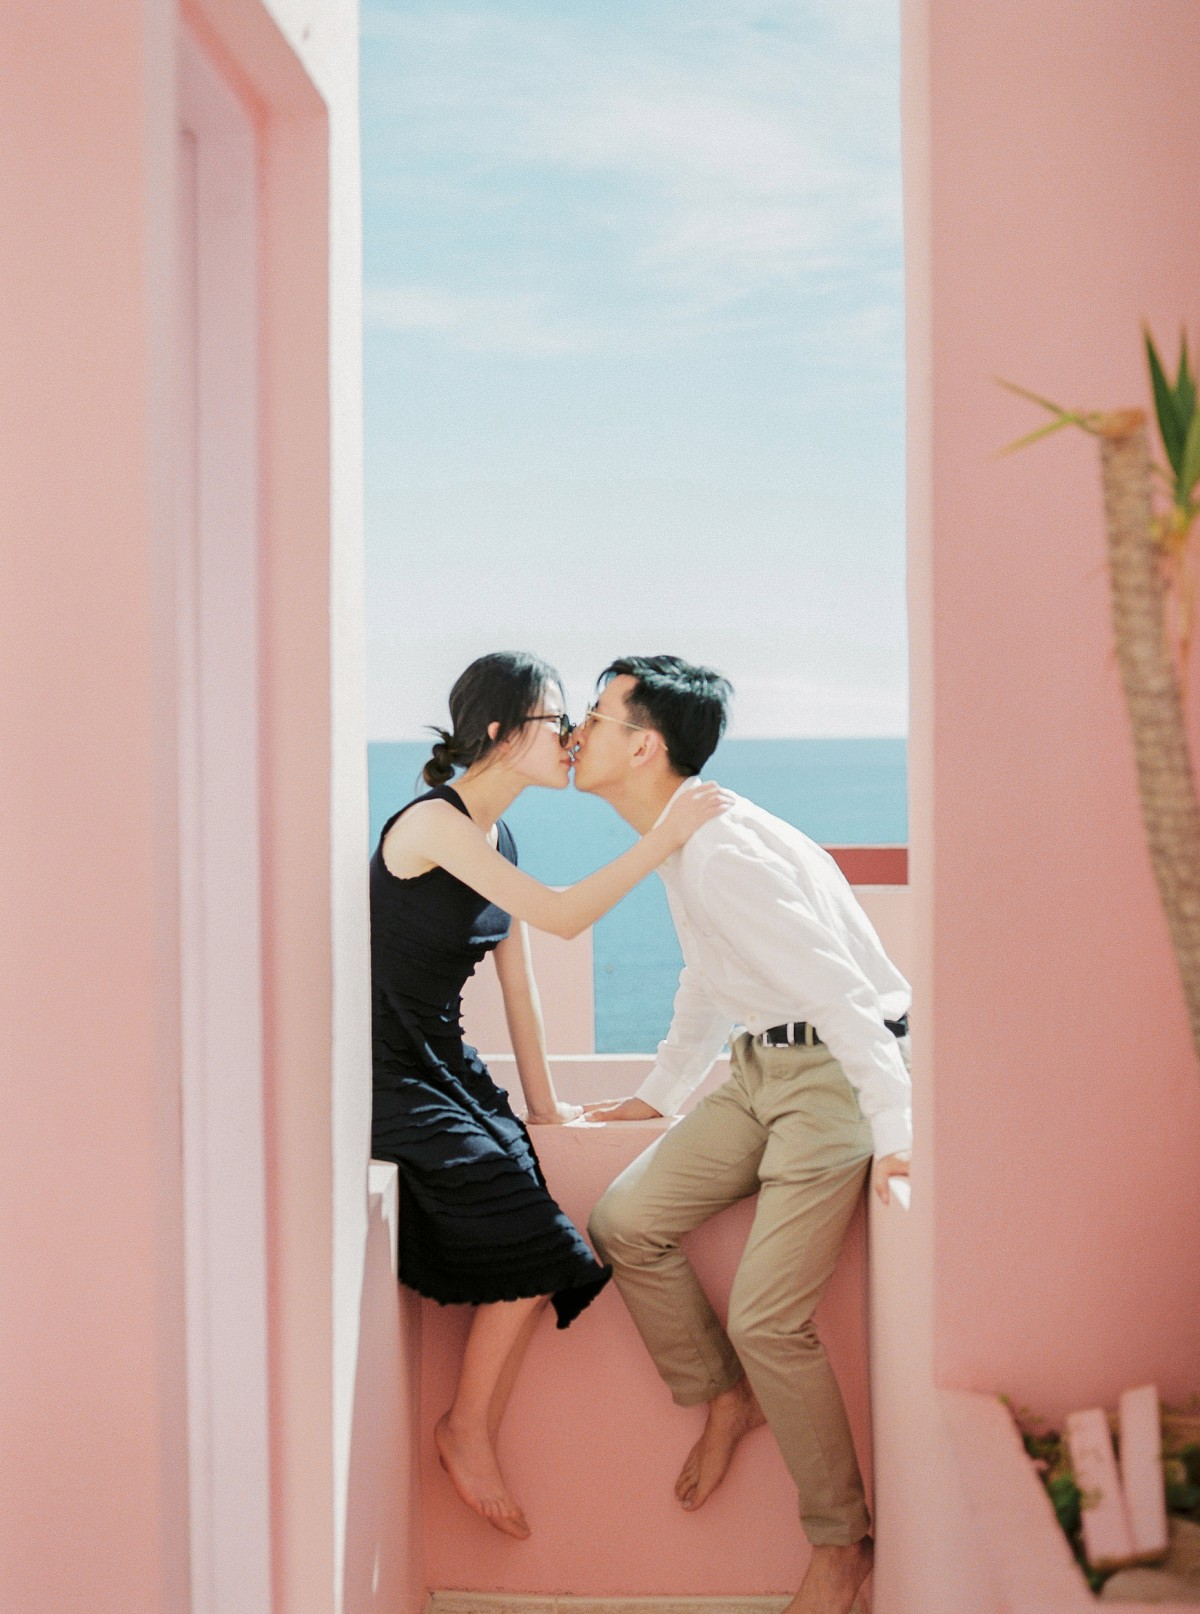 La Muralla Roja Engagement Session